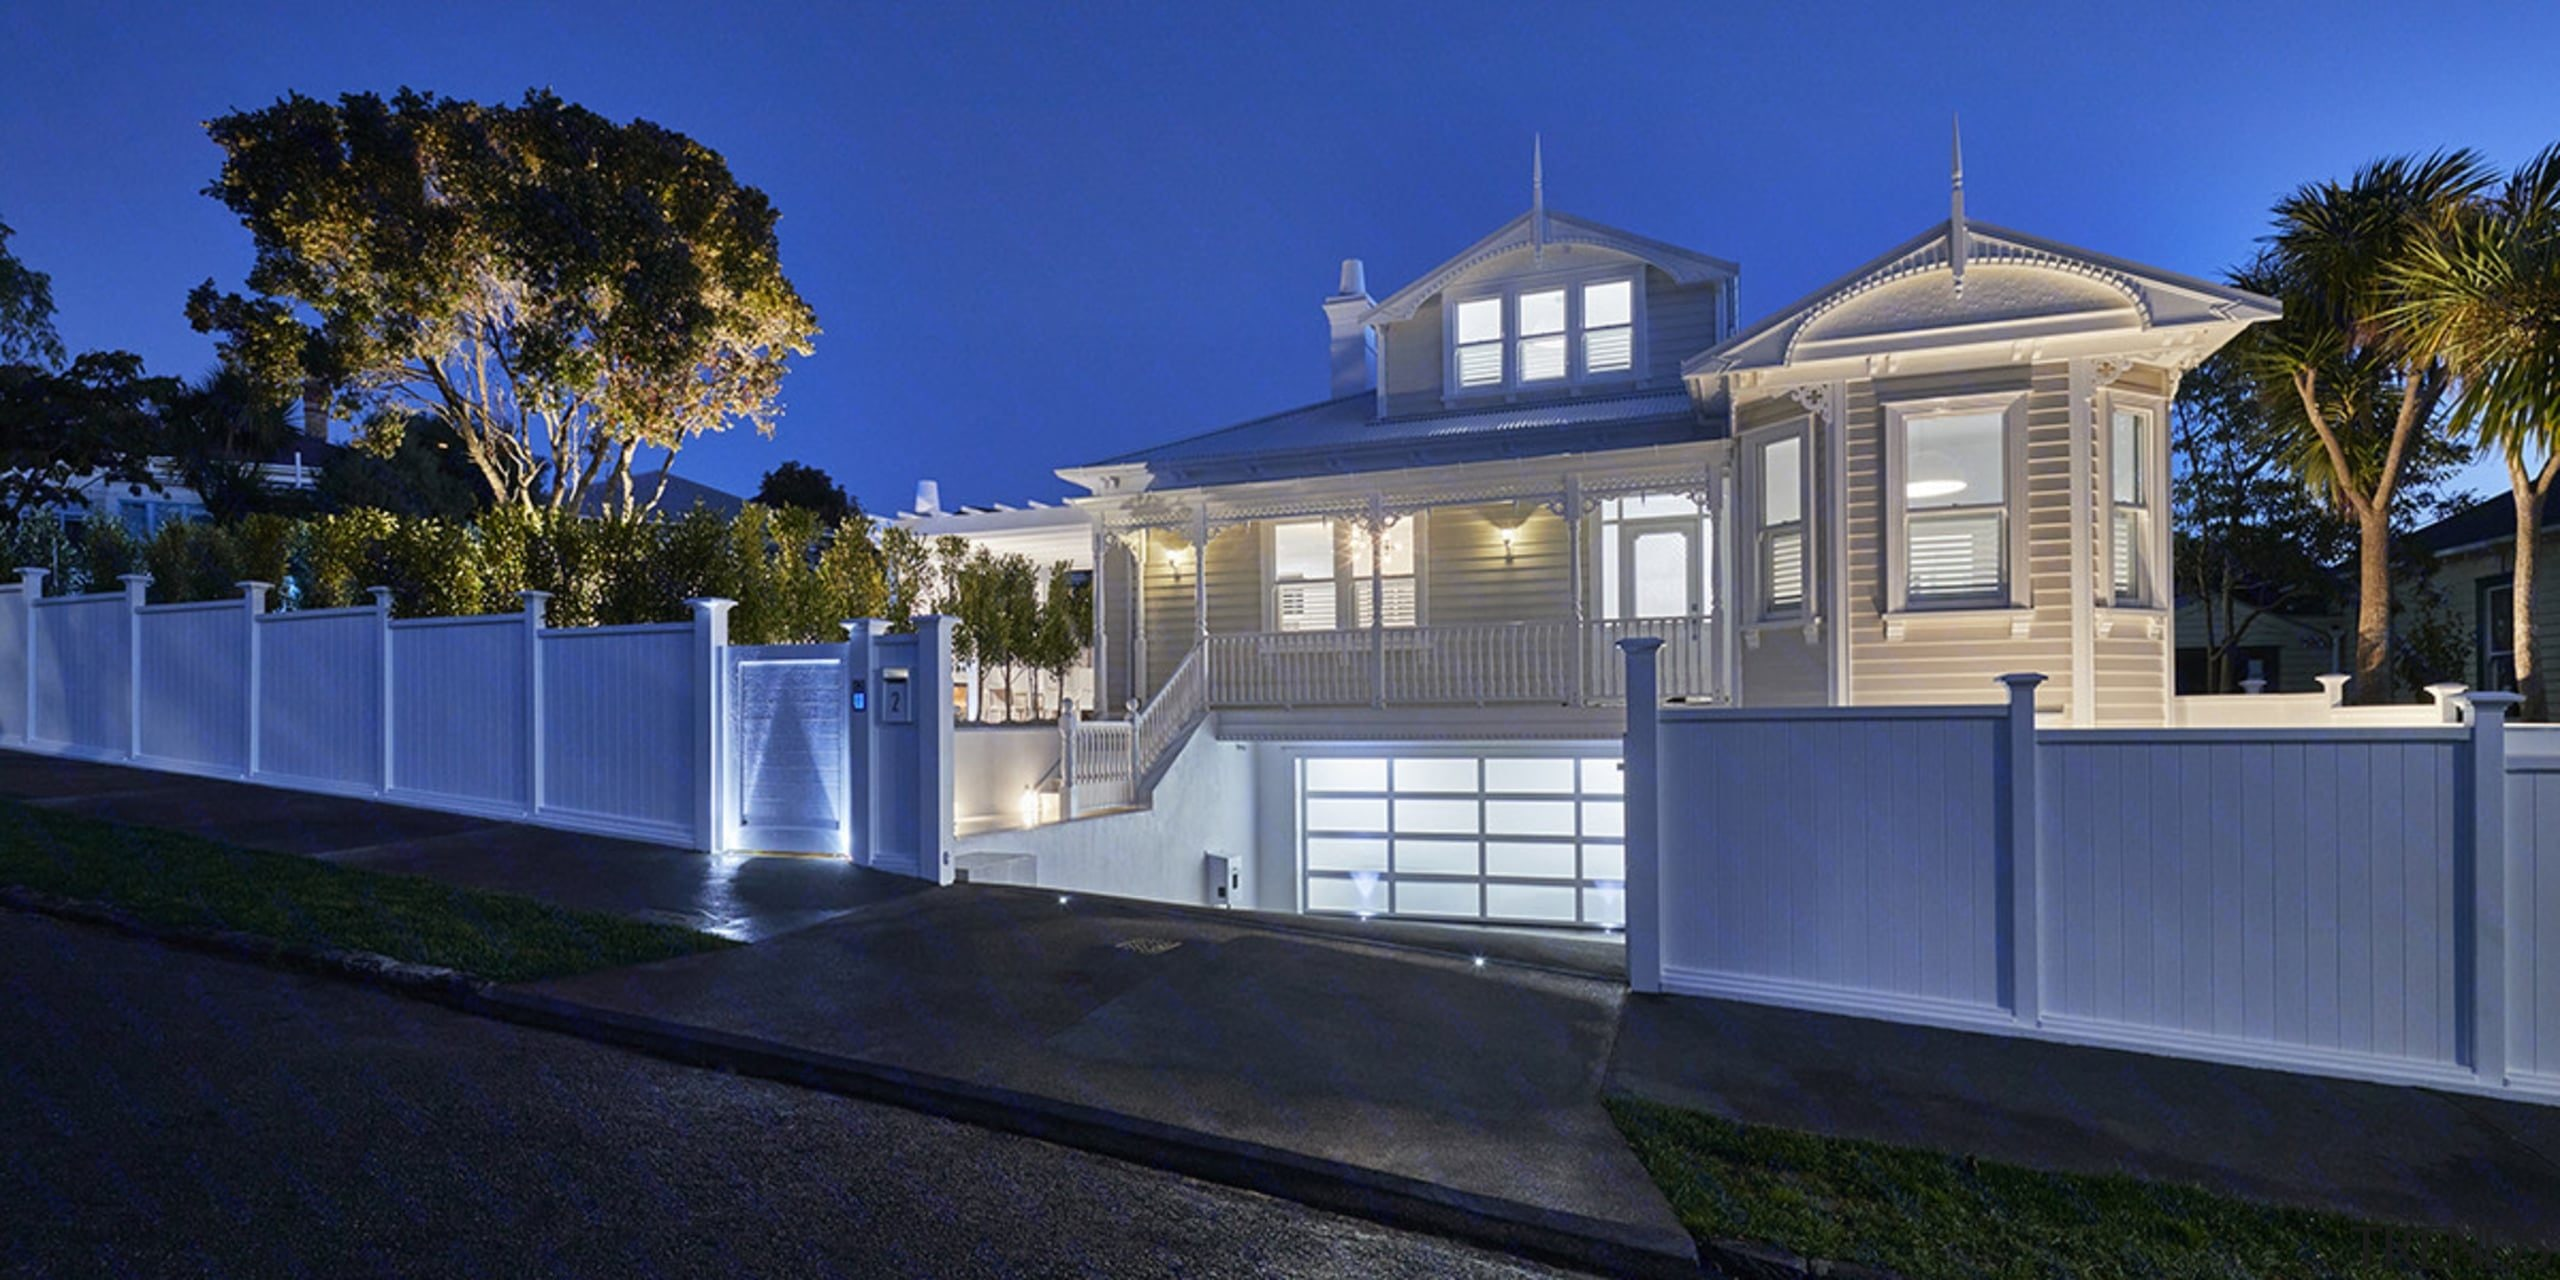 See more of this home hereDesigned by building, estate, facade, fence, home, house, lighting, mansion, property, real estate, residential area, sky, villa, blue, black